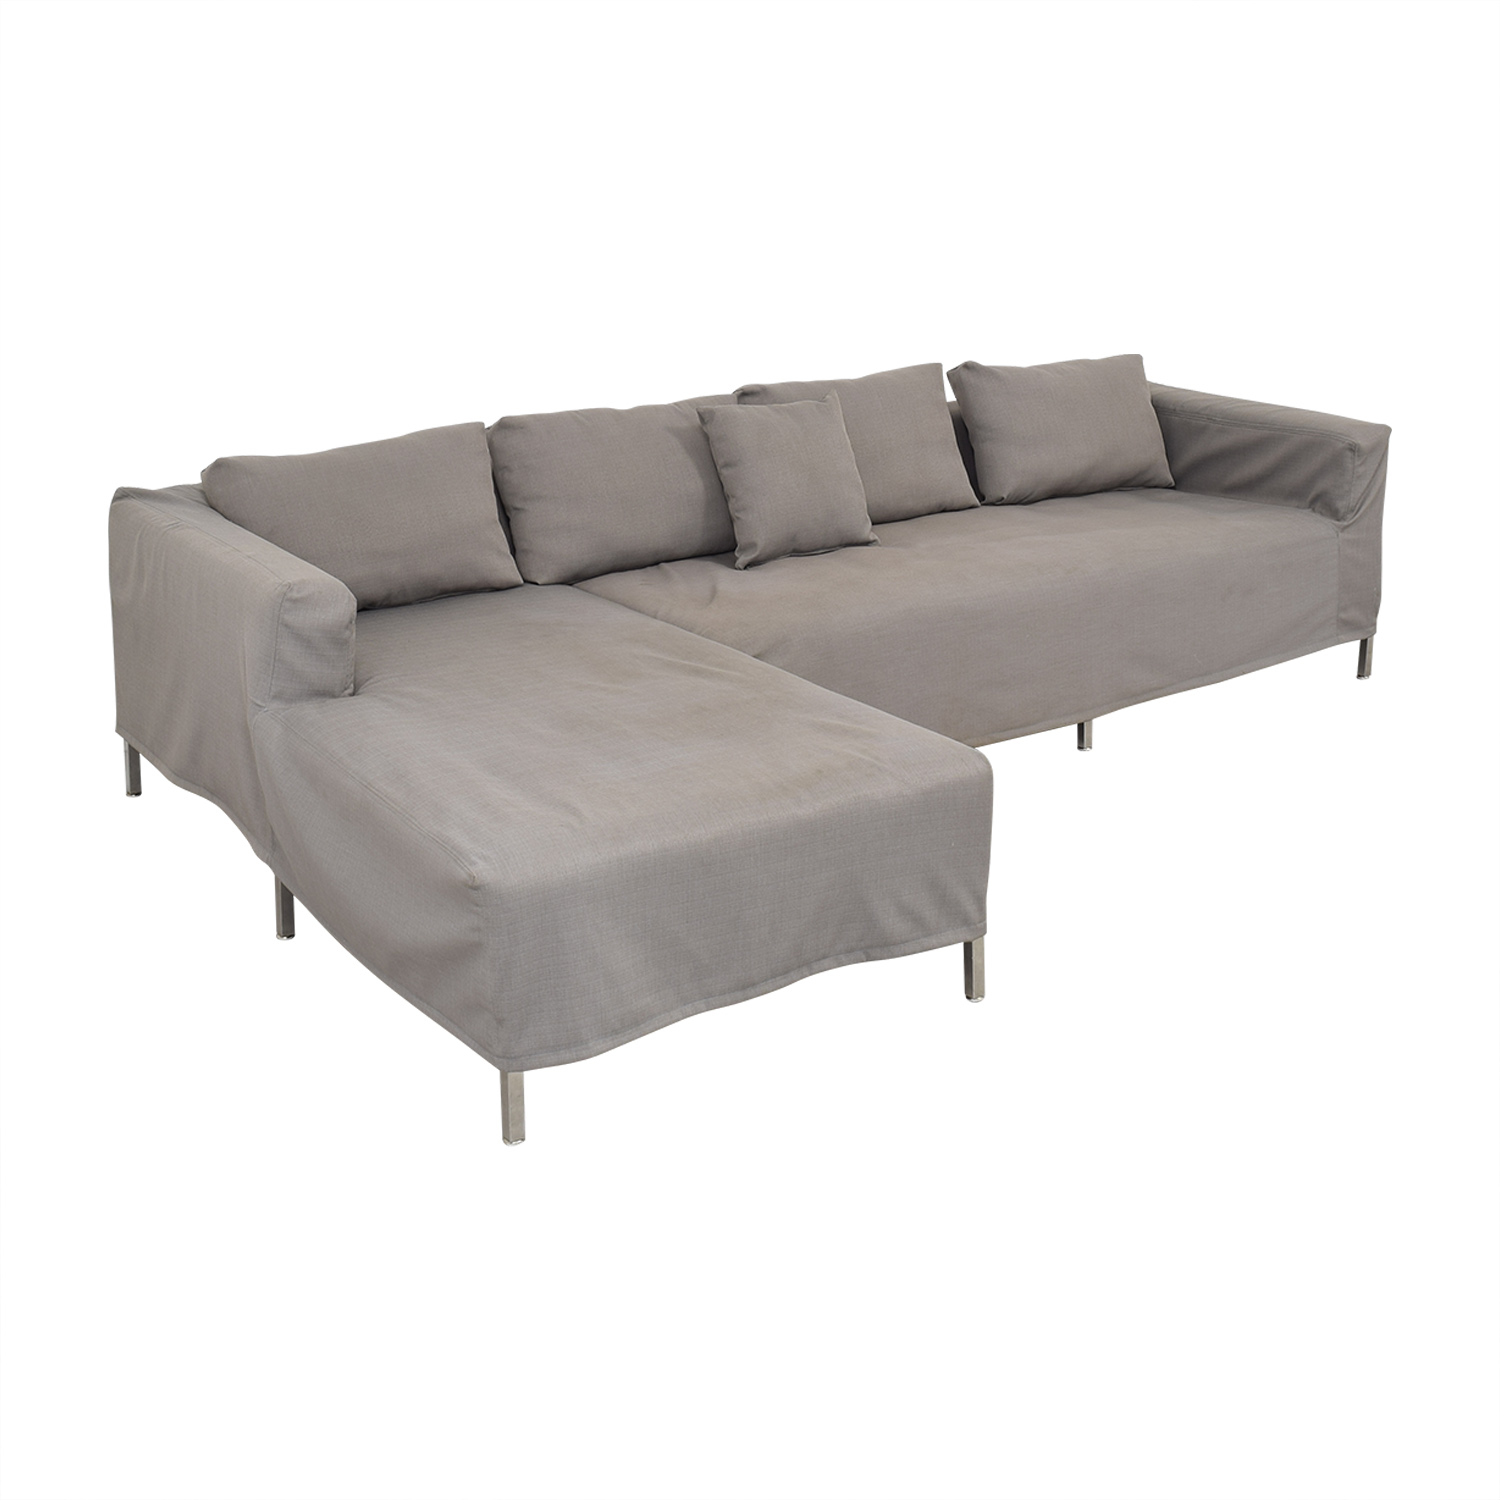 Gus Modern Sectional Sofa with Chaise / Sectionals